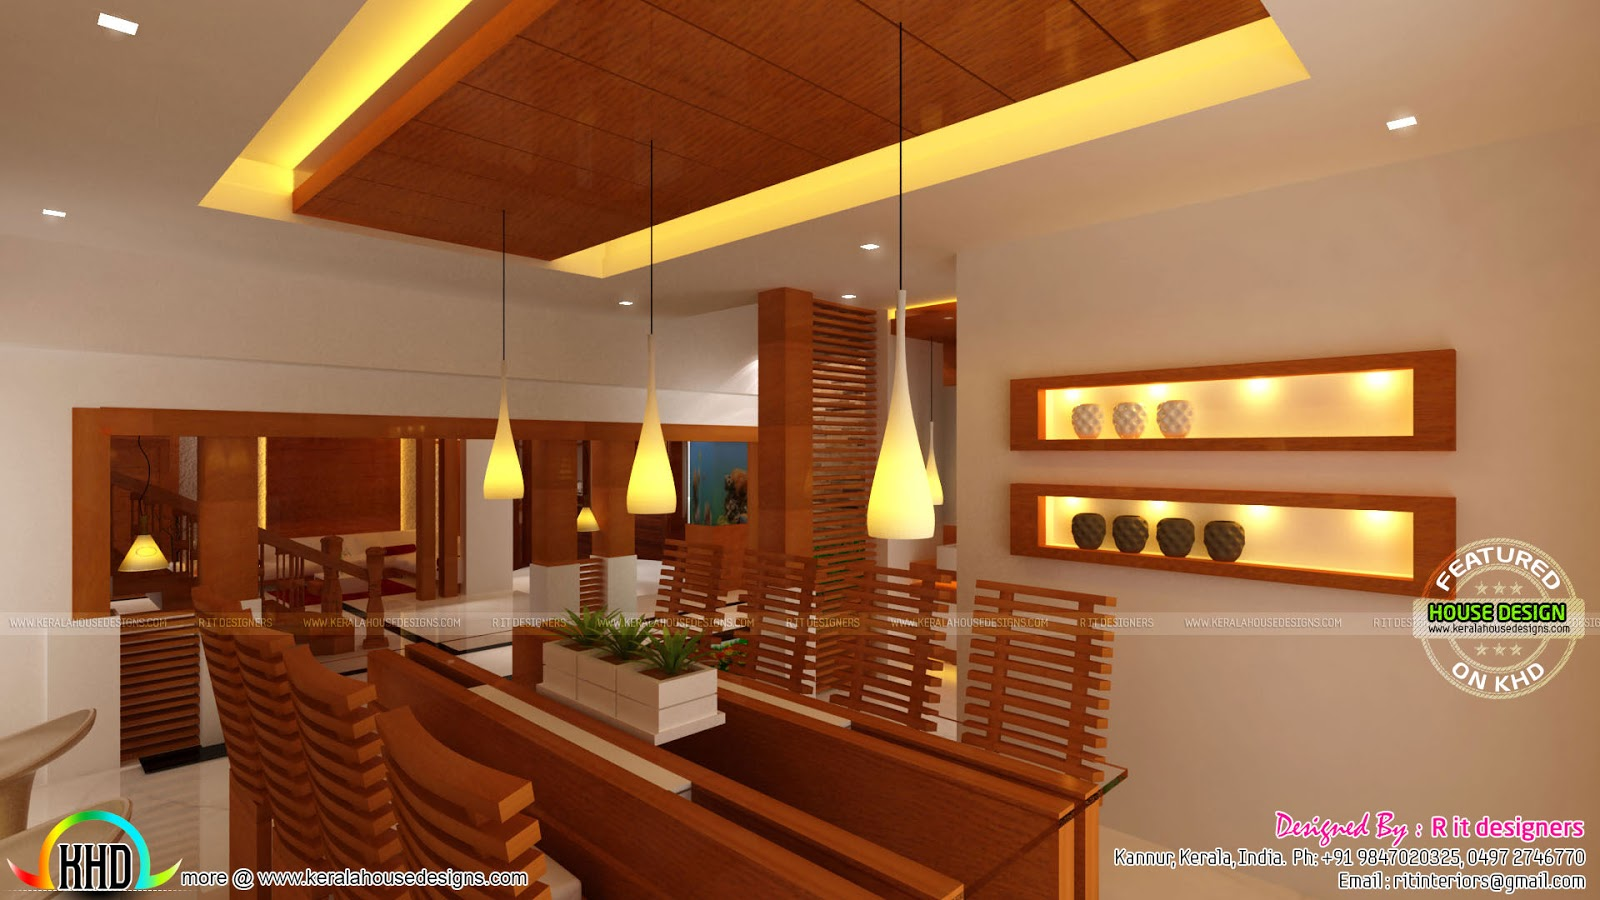 Wooden finish interior designs kerala home design and for Kerala house interior arch design